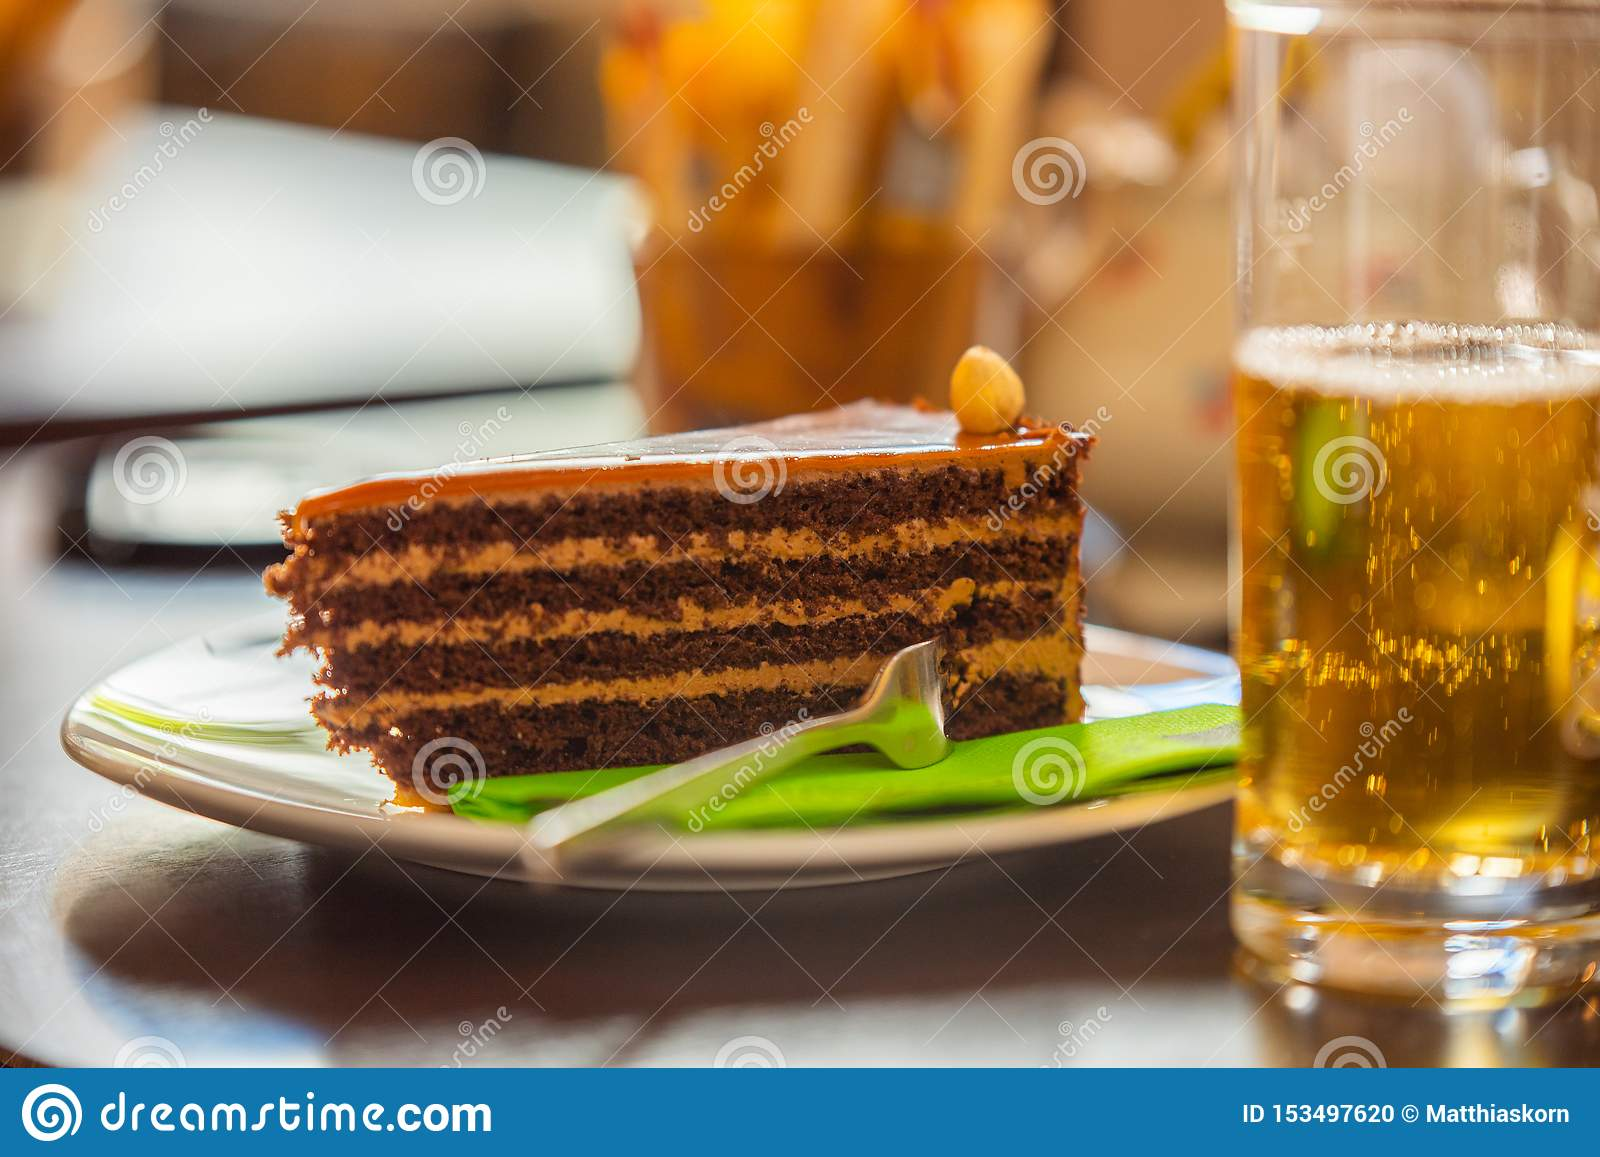 On a warm summer`s day a piece of delicious cake and a cool drink